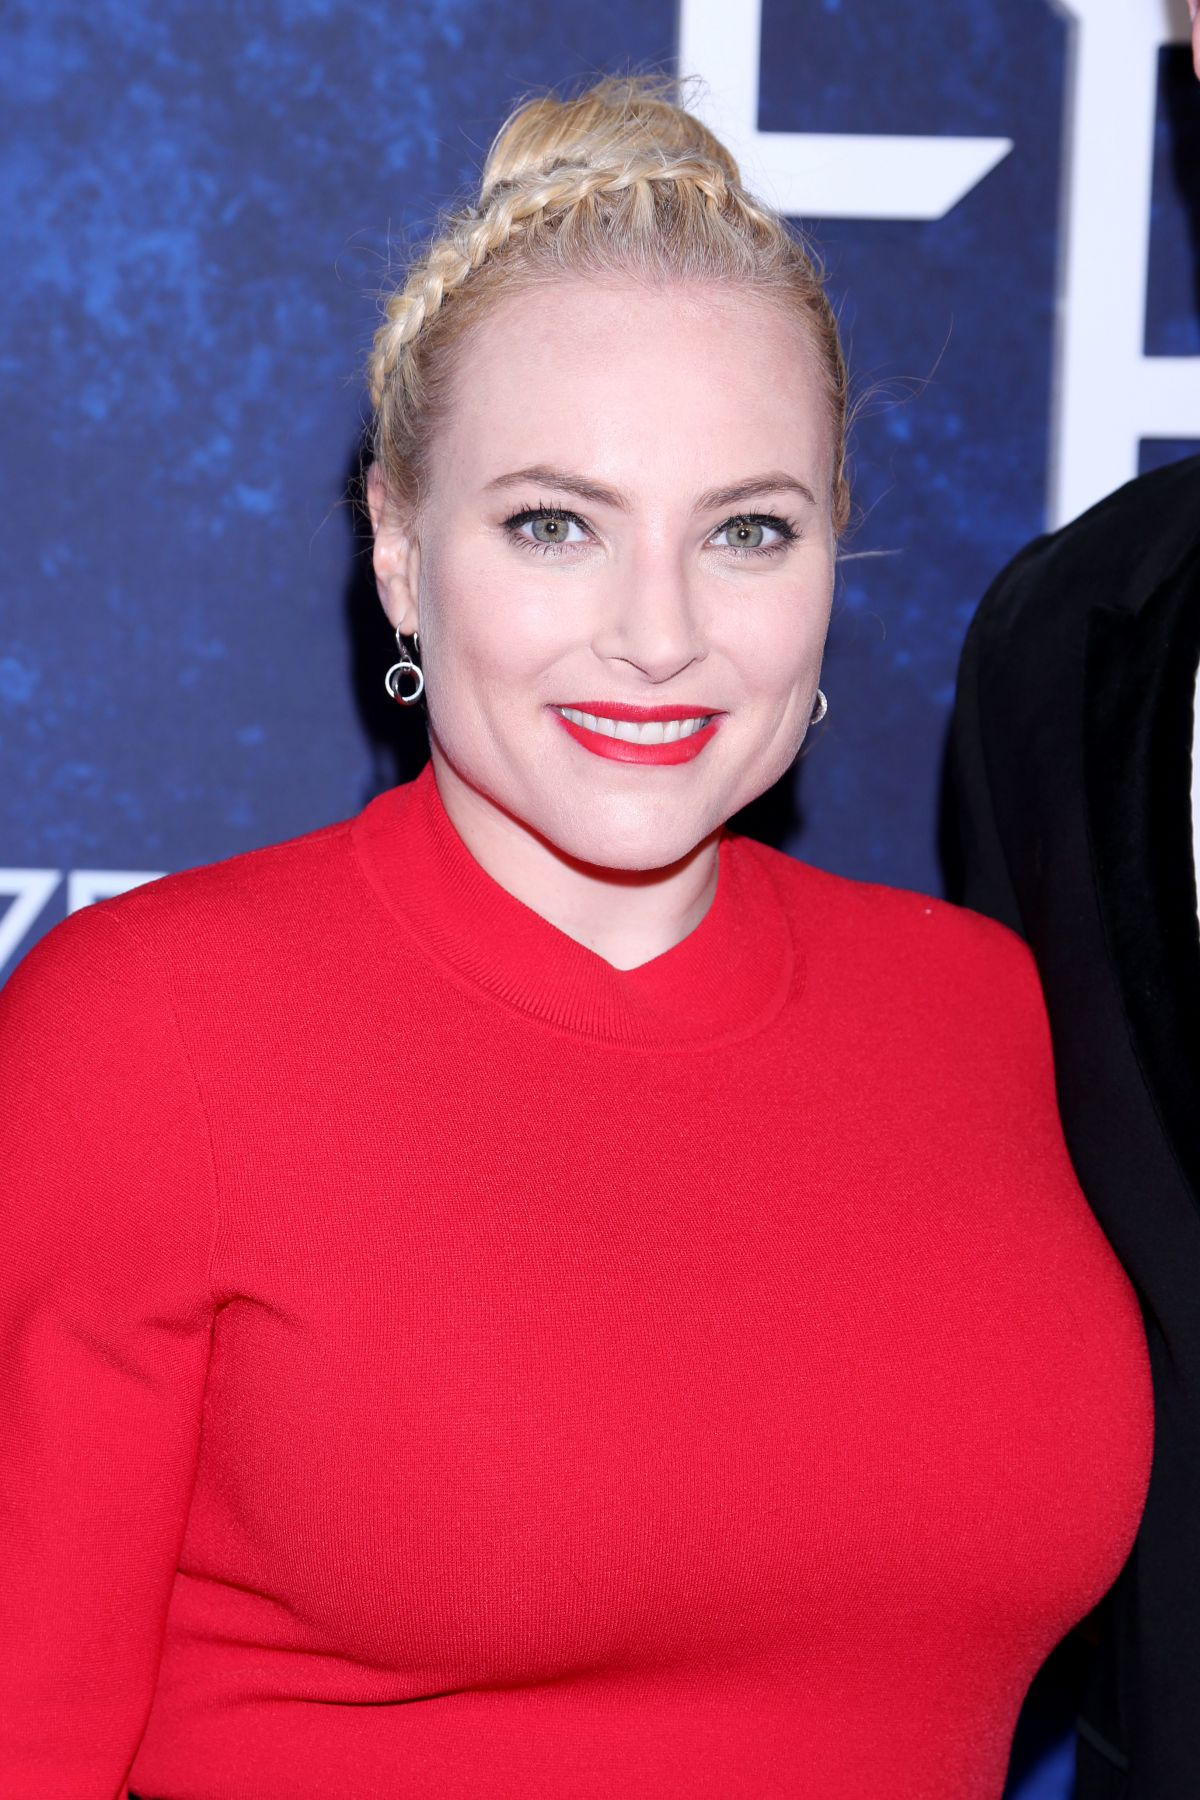 meghan mccain - photo #6